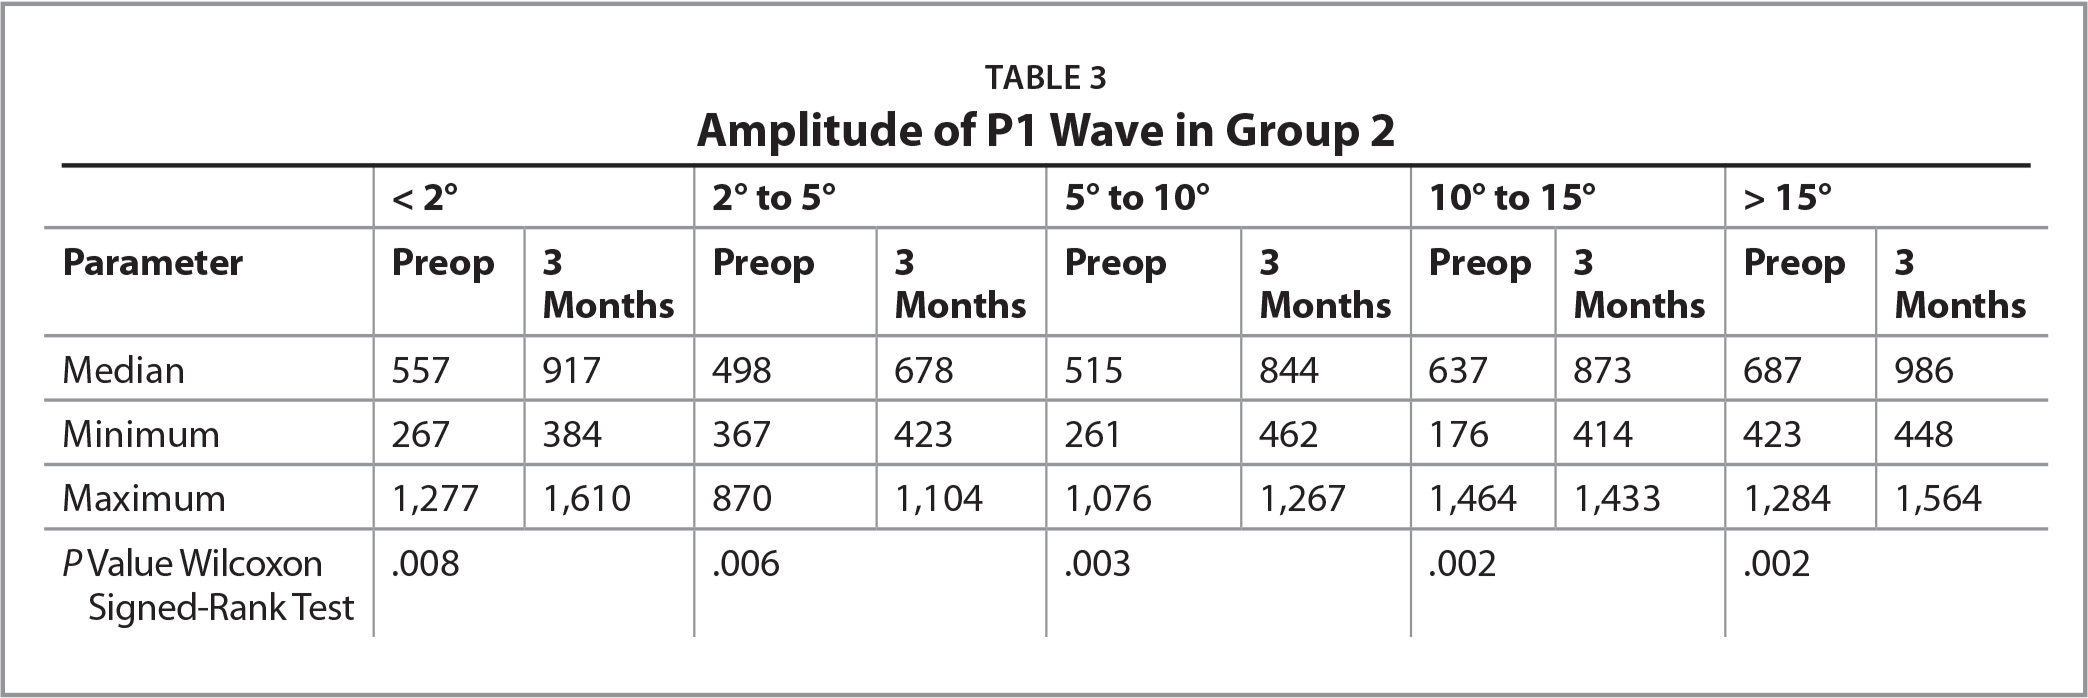 Amplitude of P1 Wave in Group 2